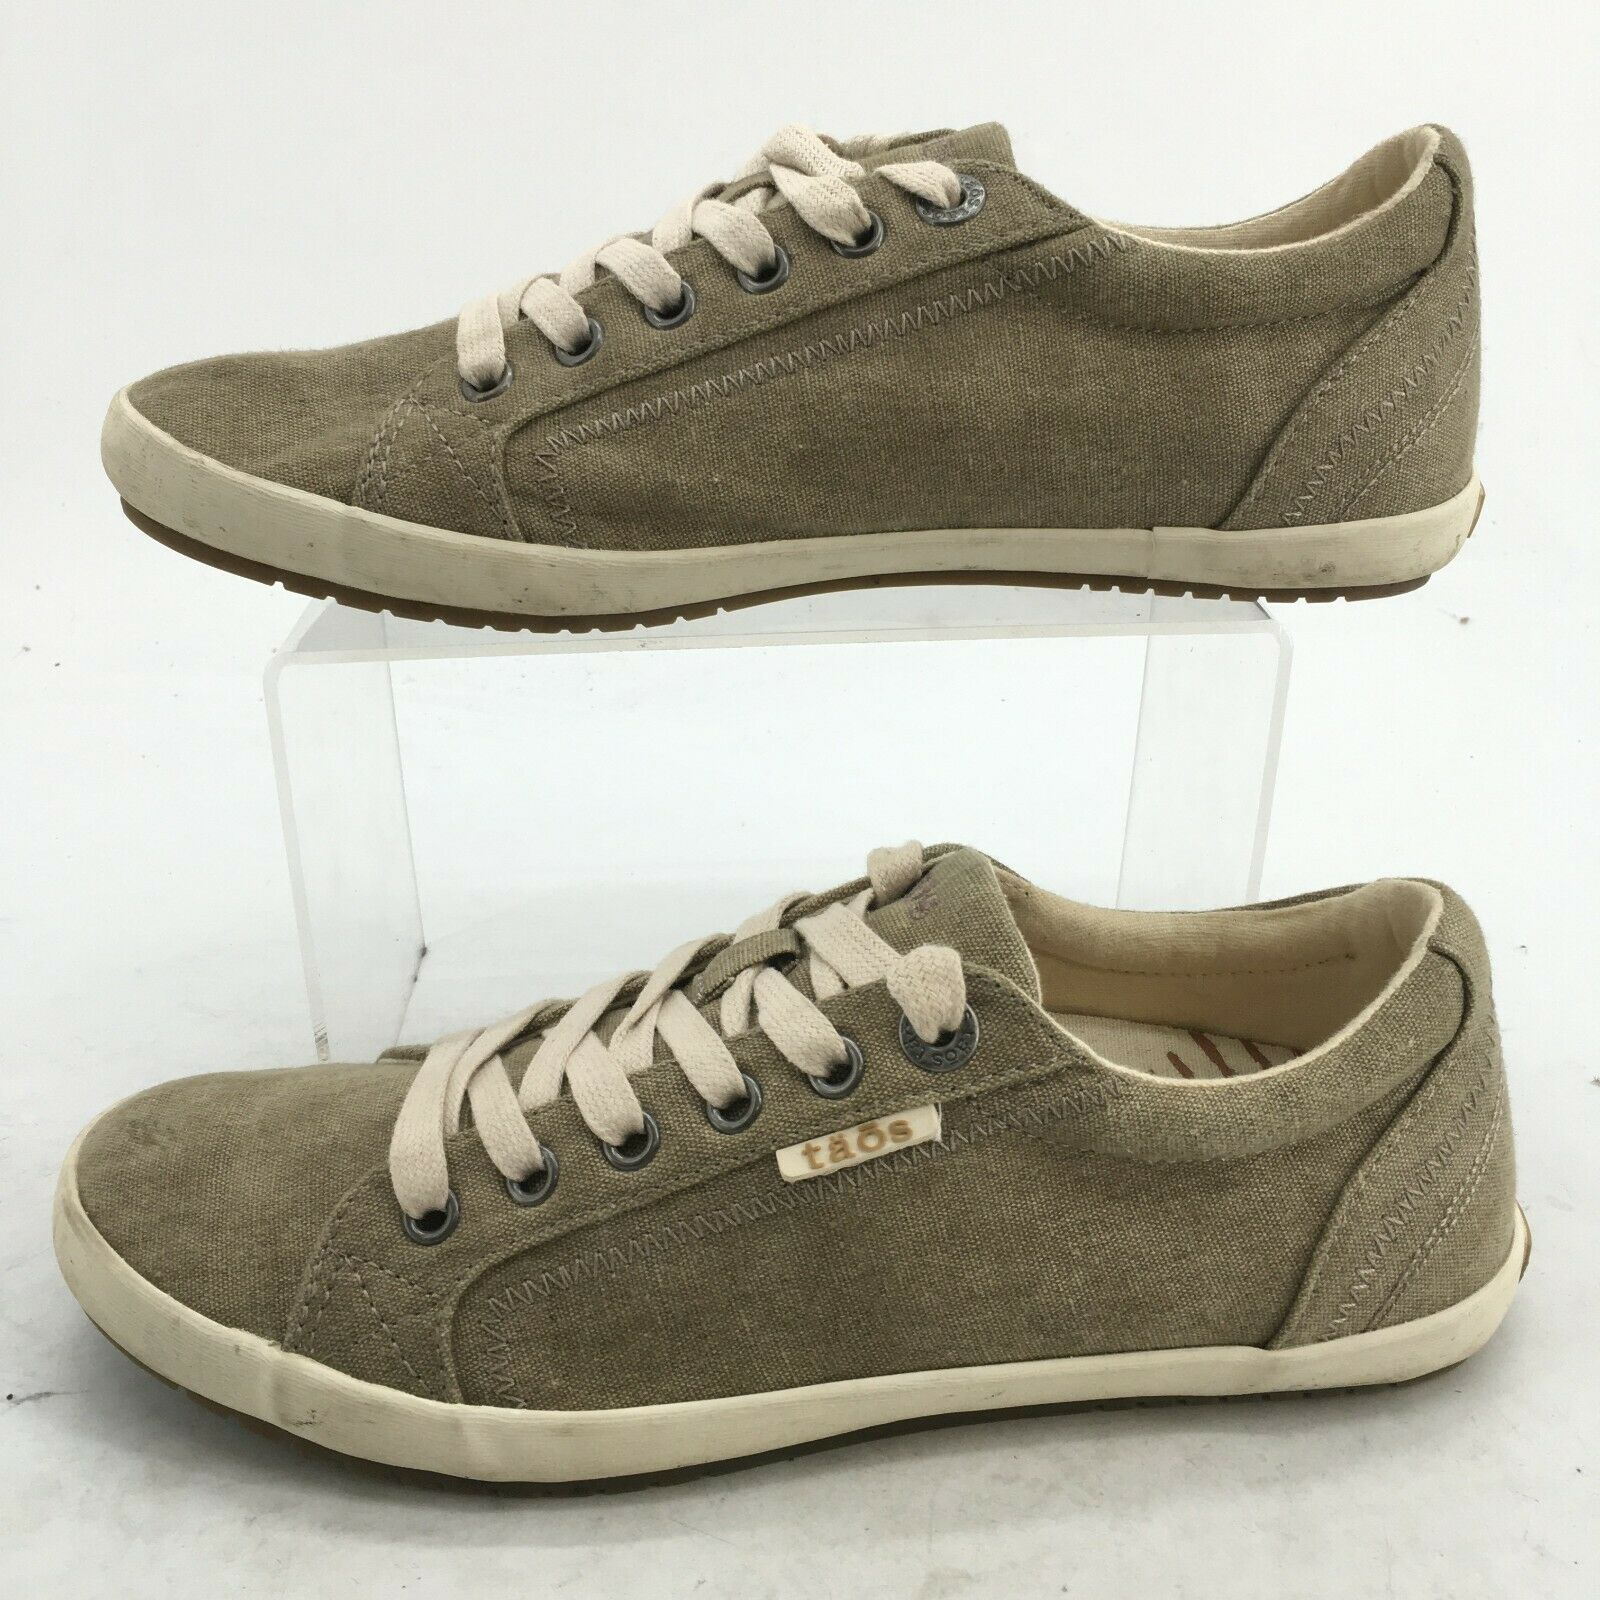 Taos Womens 8 Star Lace Up Low Top Casual Shoes Sneakers Khaki Canvas